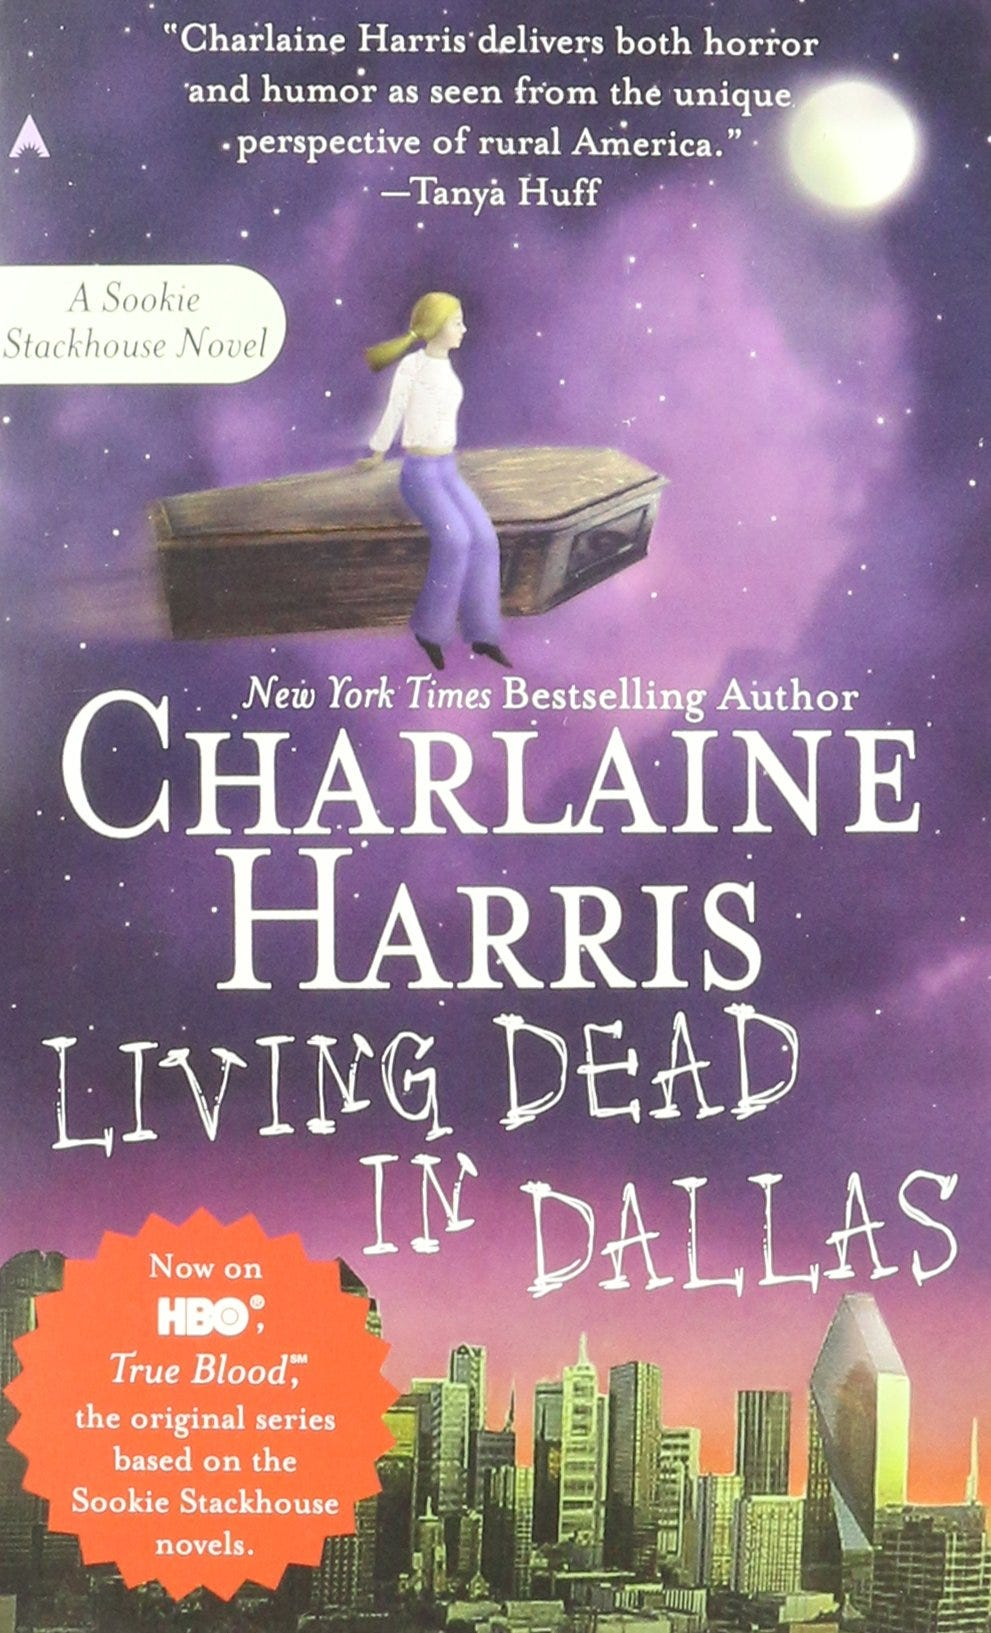 The cover of Charlaine Harris' 2002 book, Living Dead in Dallas (Ace Books)